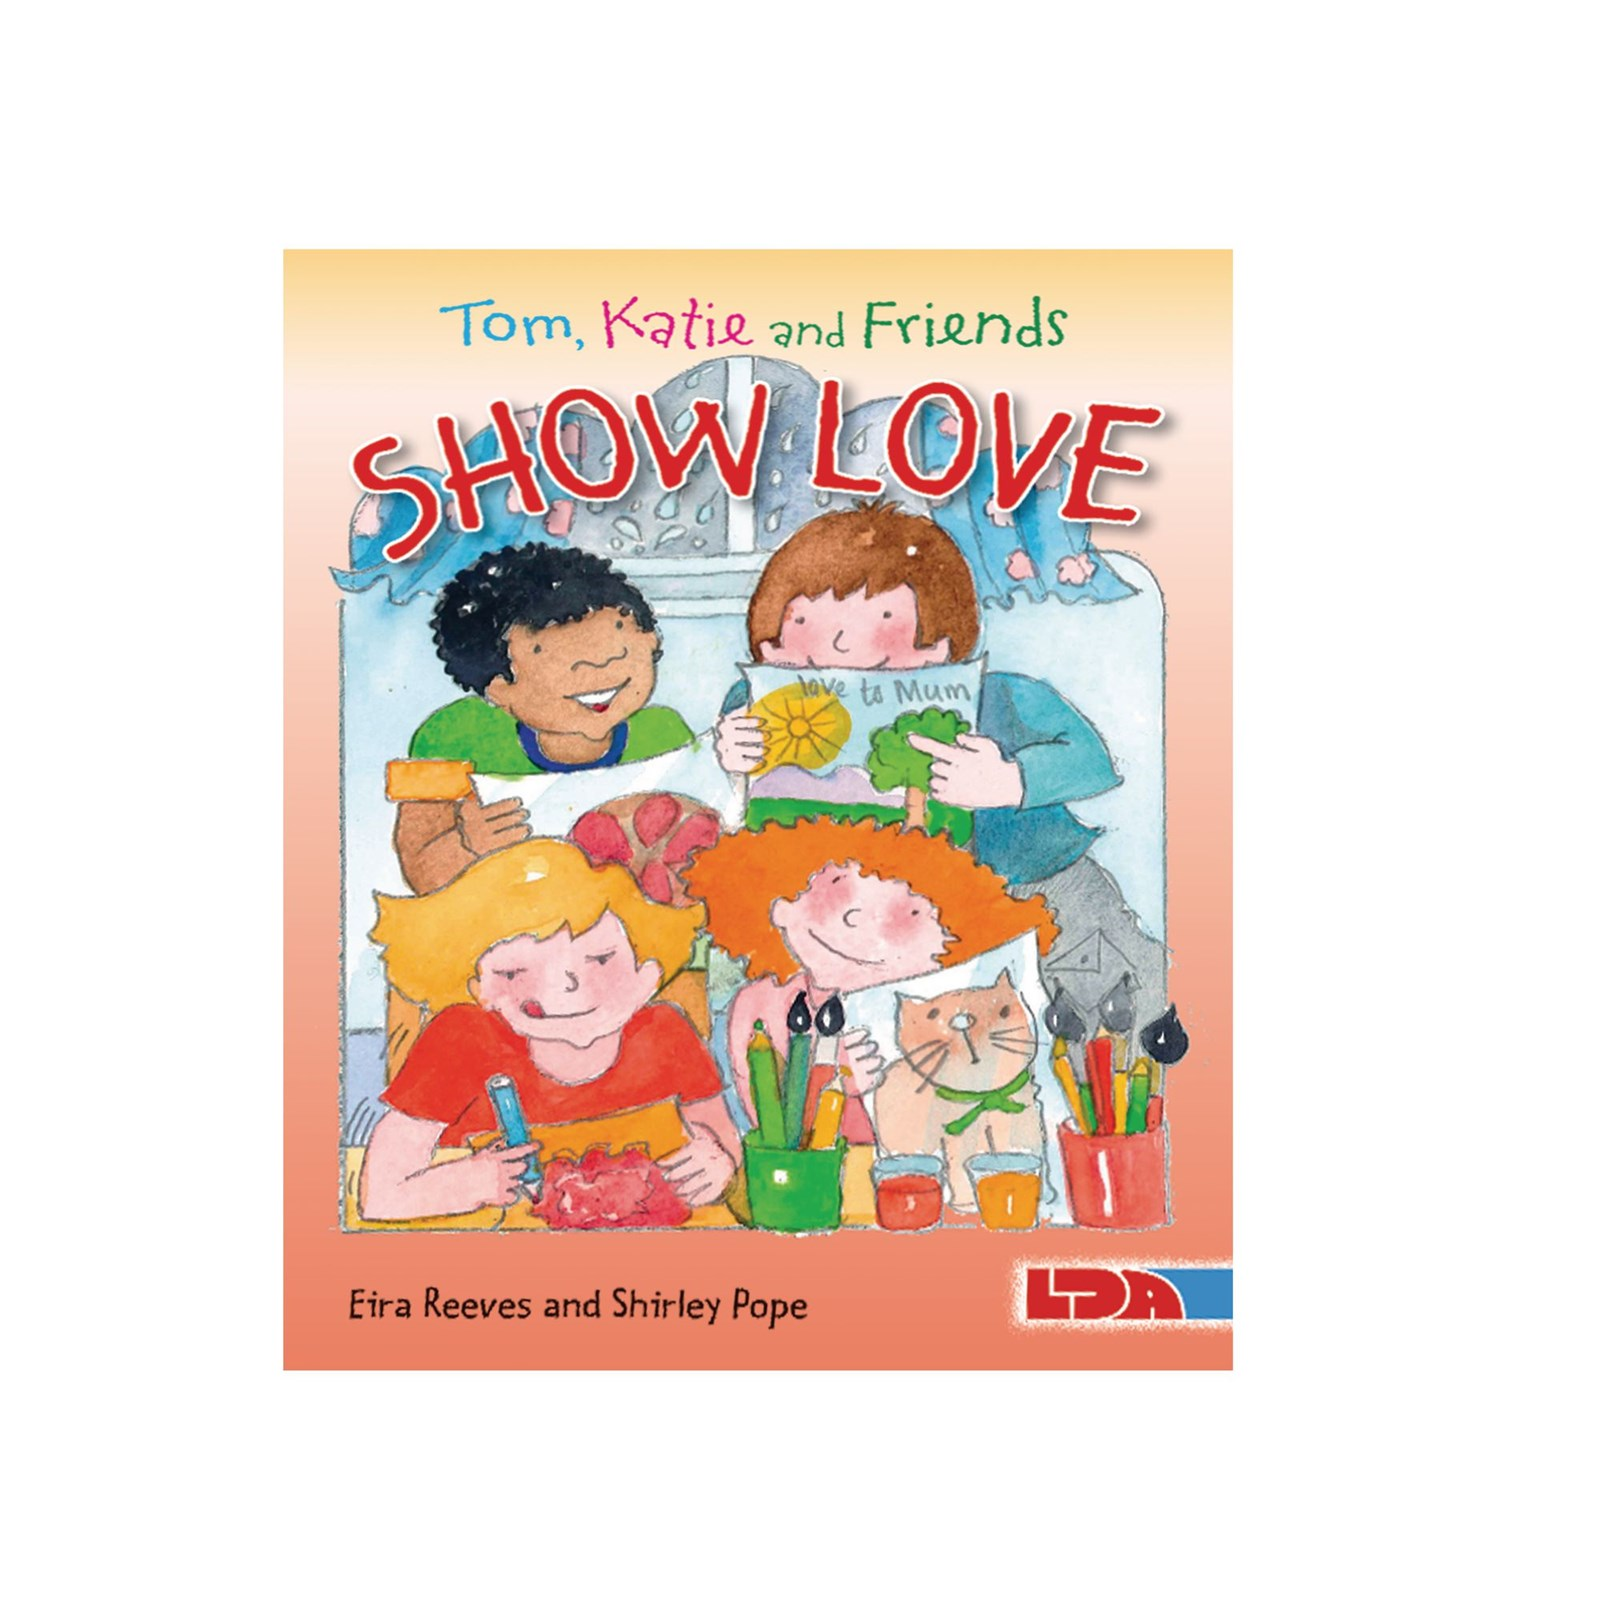 Tom, Katie and Friends Show Love Book